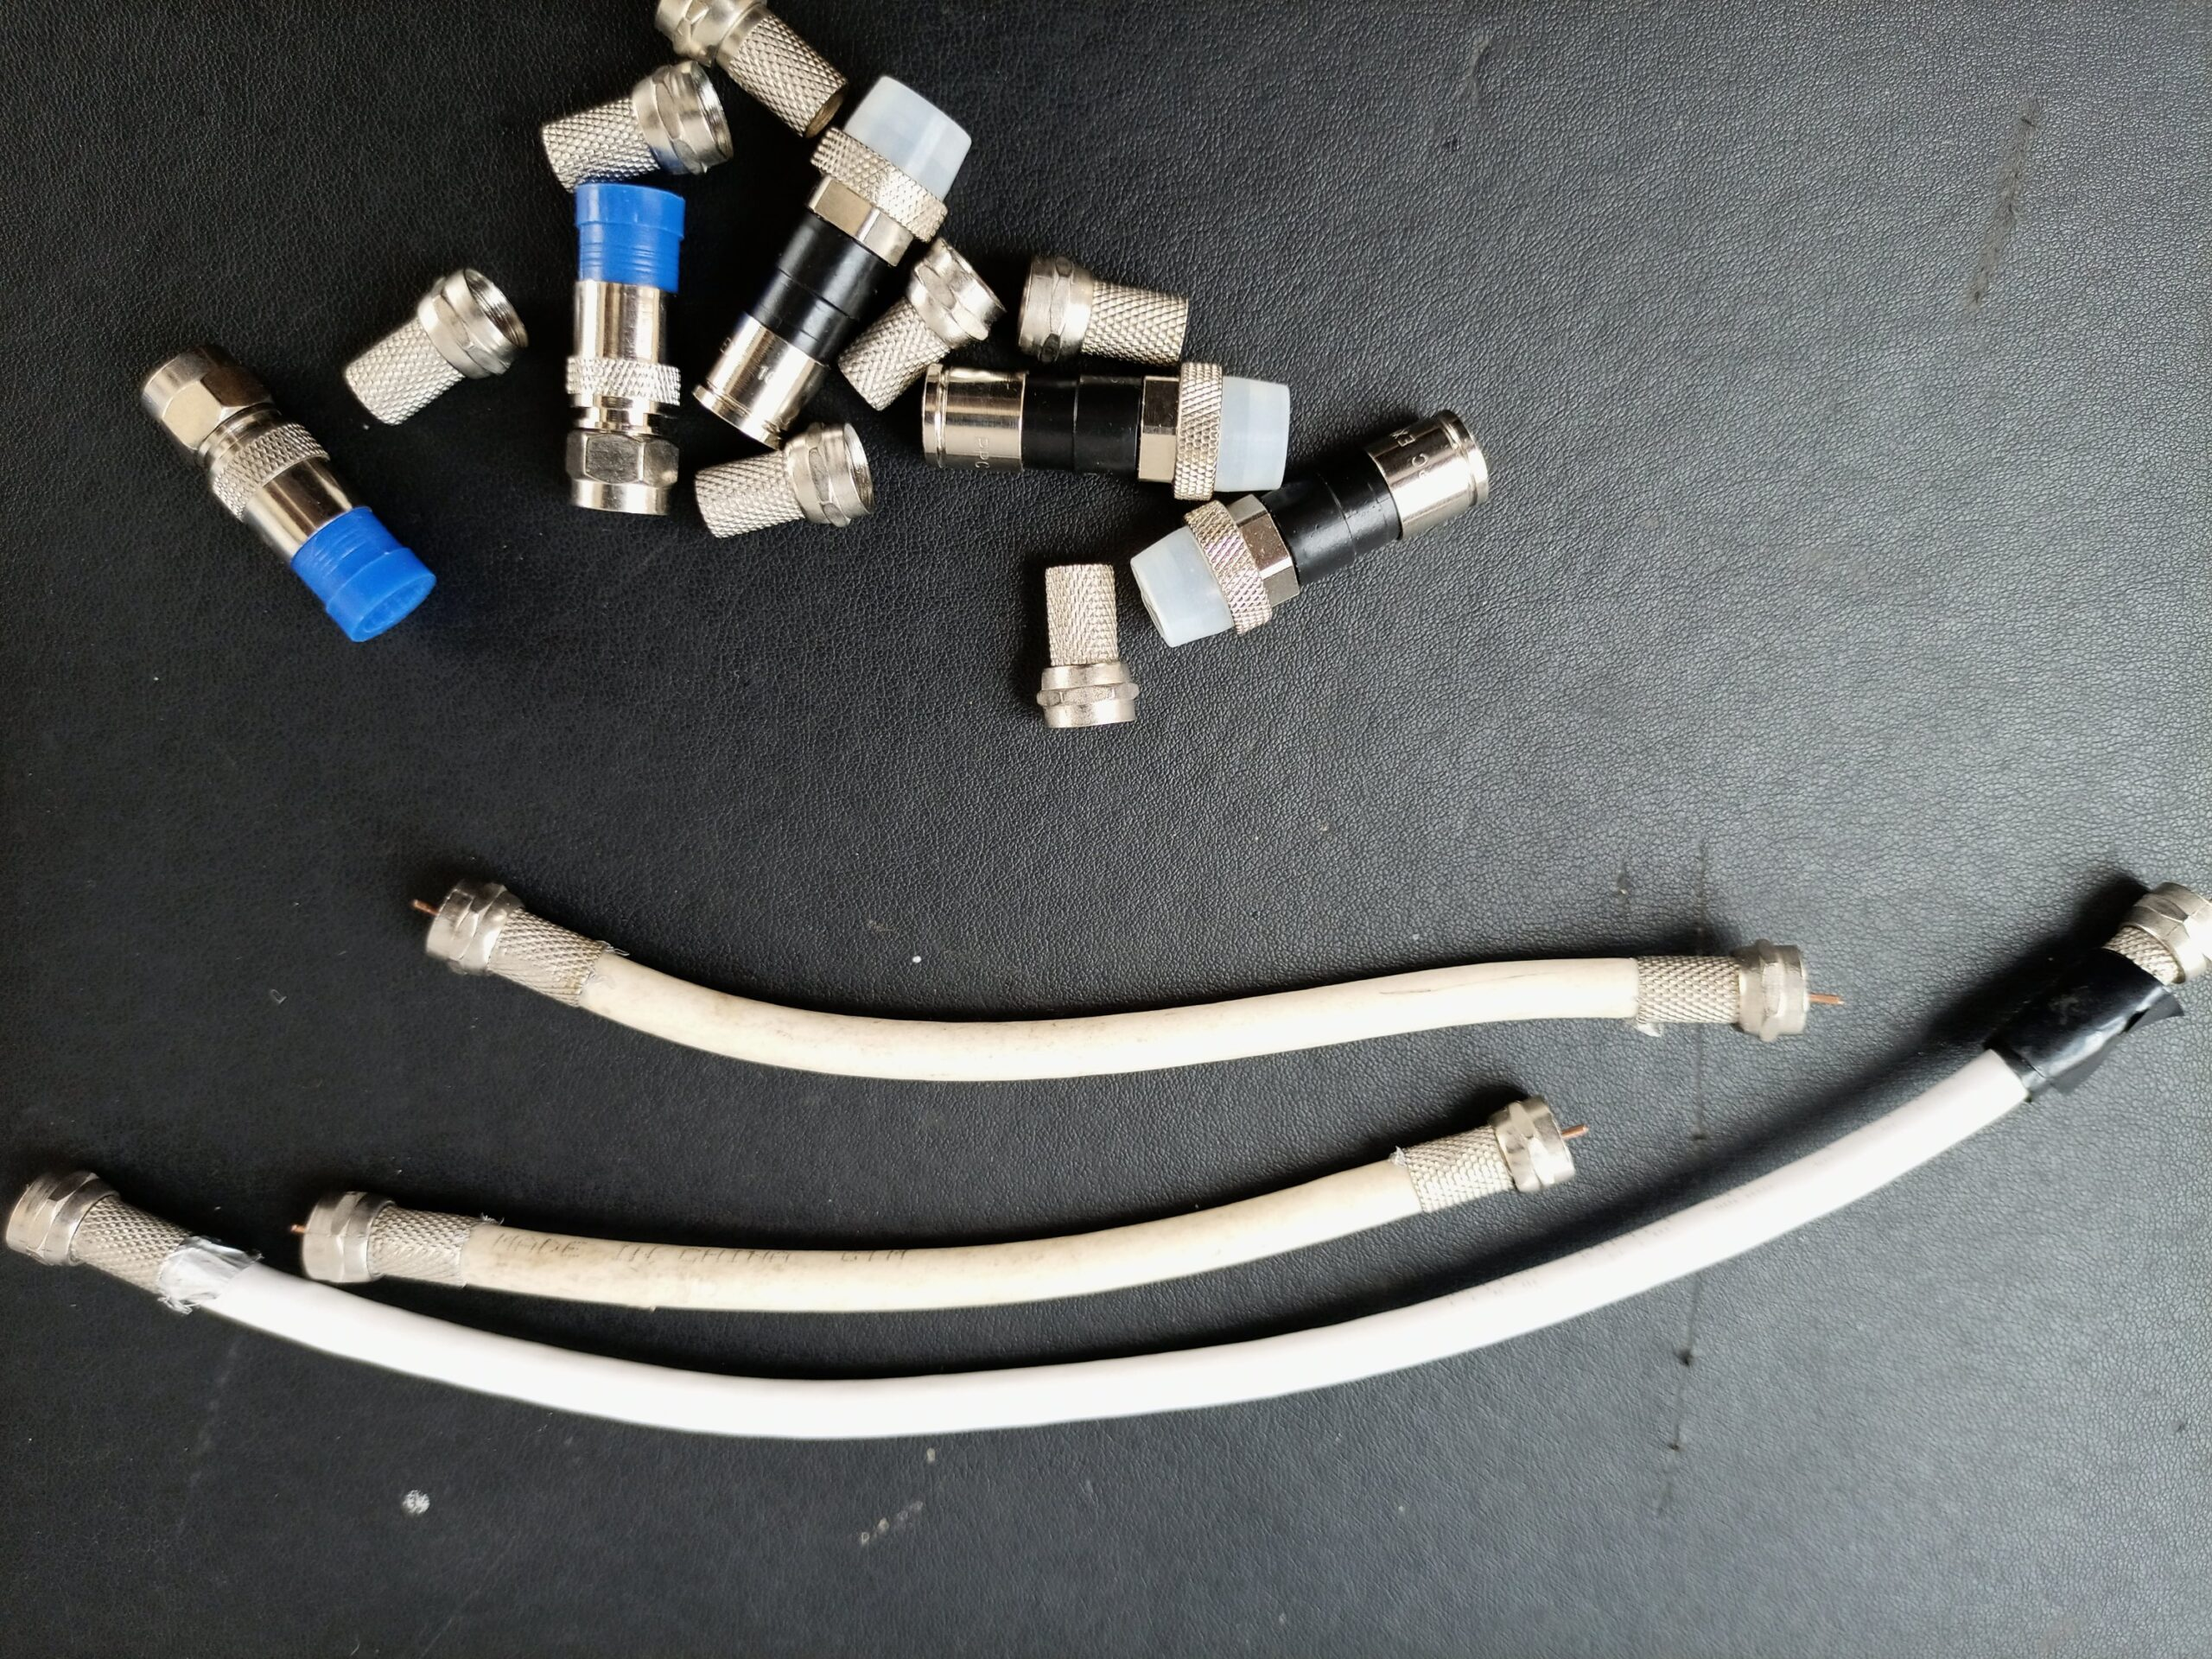 F-connectors and coaxial cable